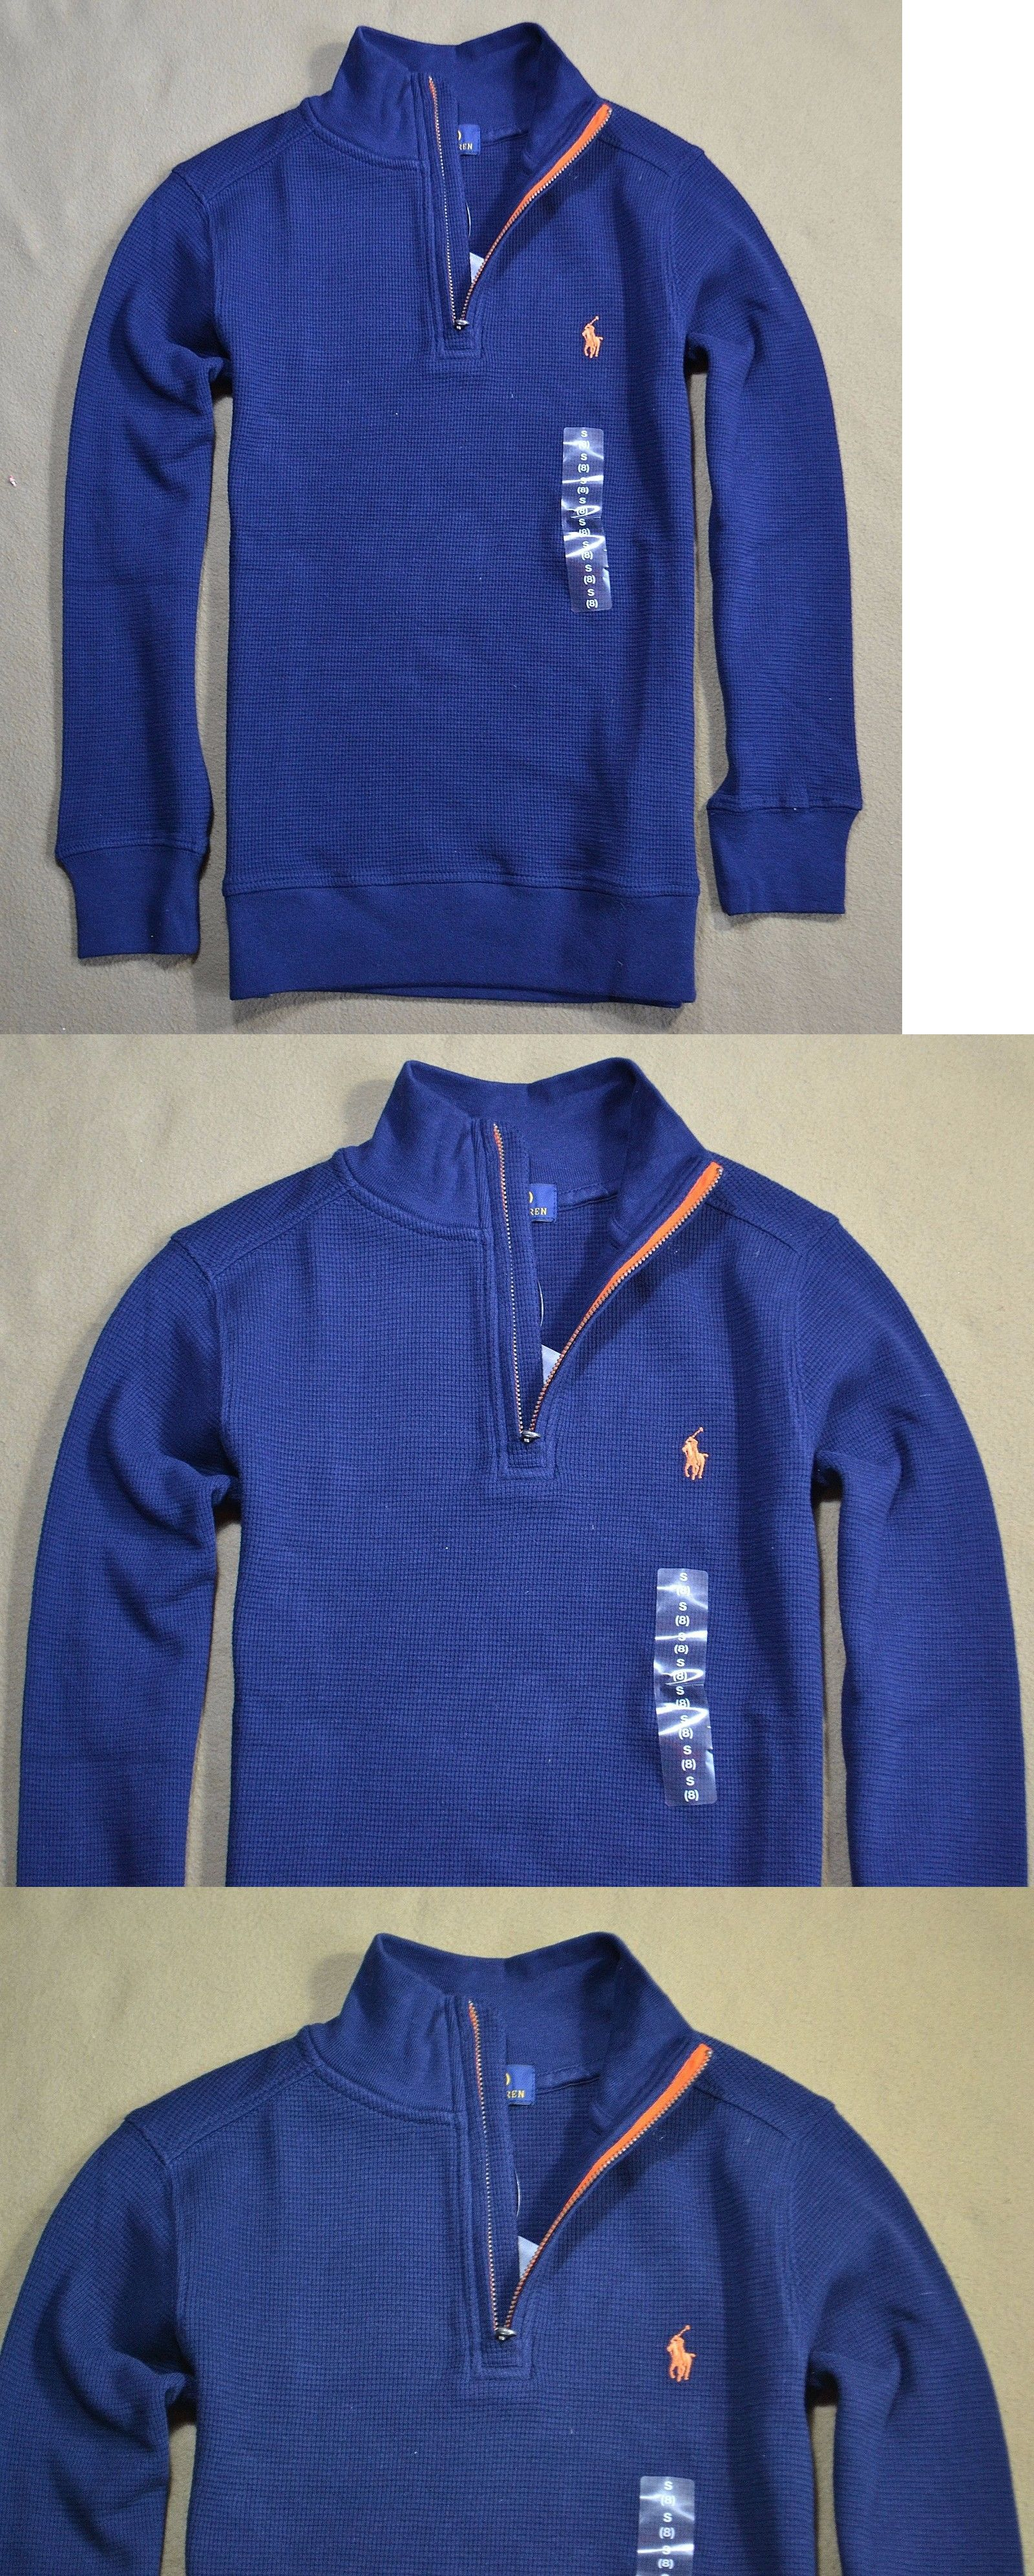 c8c6131533d6 ... cheap sweaters 51946 nwt boys polo ralph lauren zip up henley ls  thermal sweater shirt size